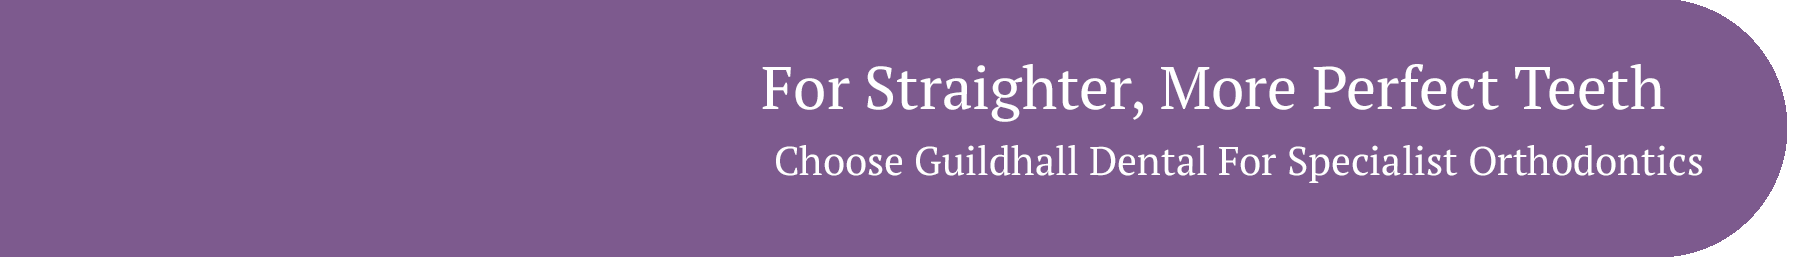 for straighter, more perfect teeth chose guildhall dental for specialist orthodontics